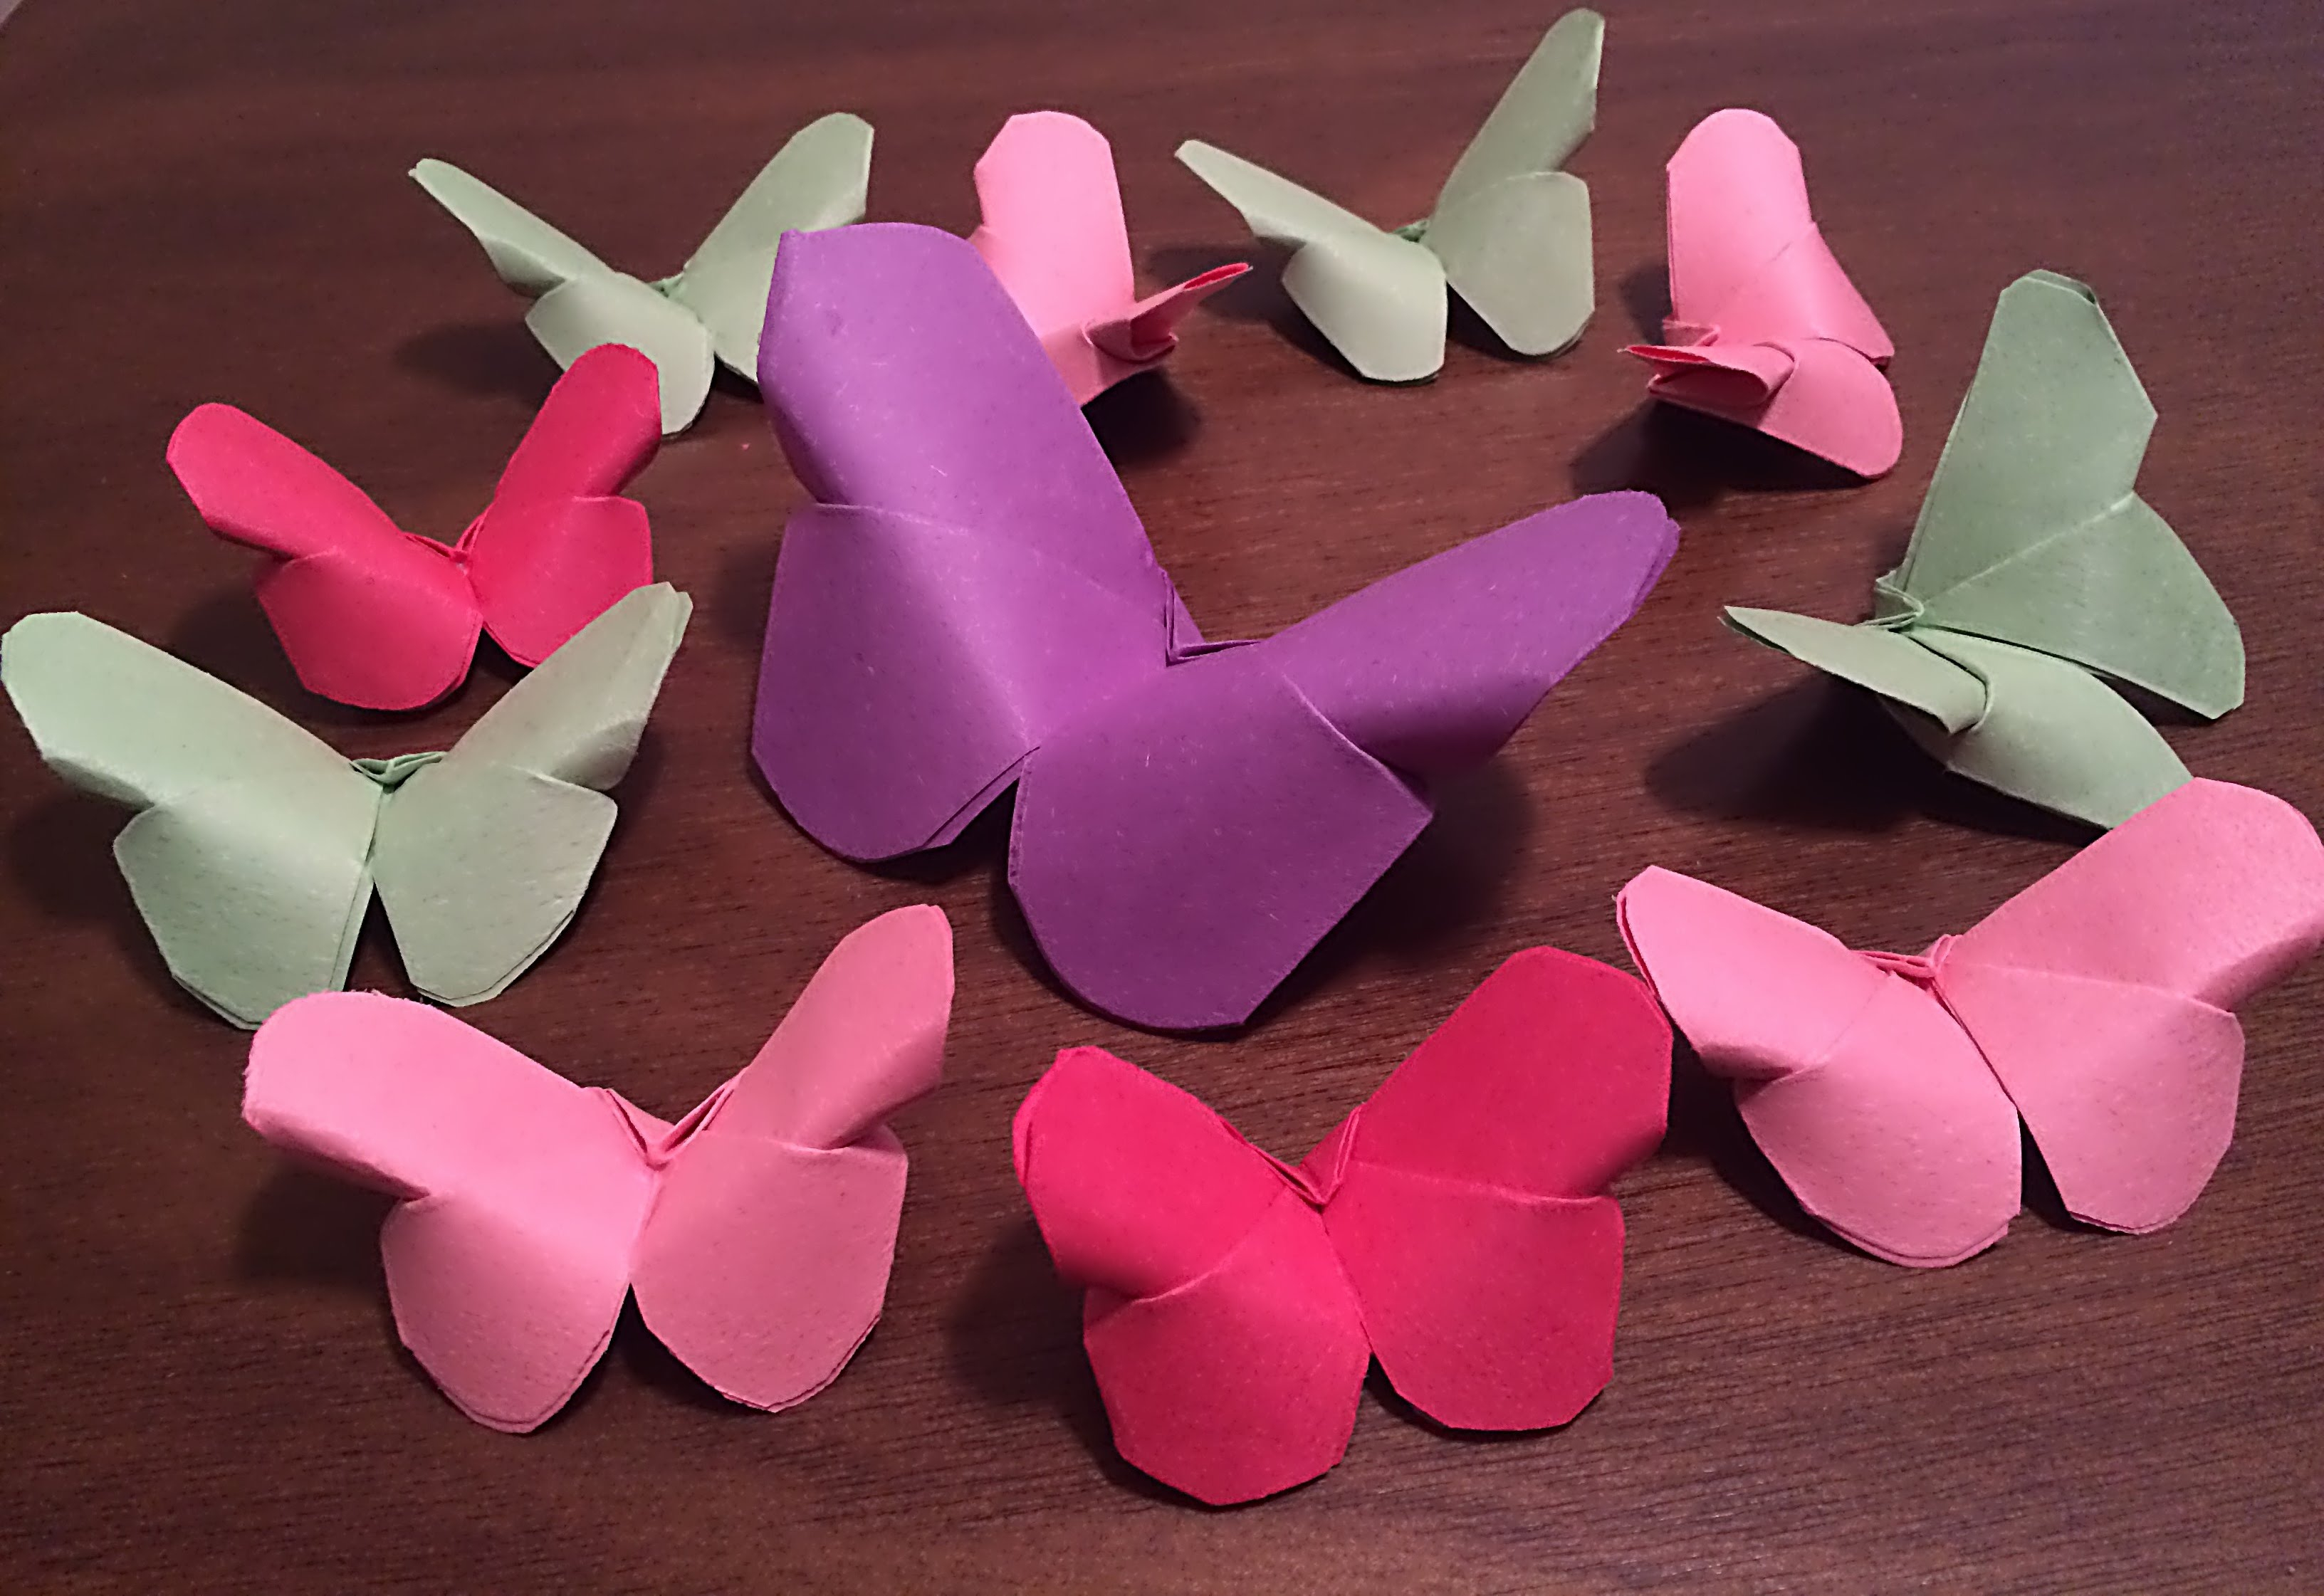 Simple and Cute Construction Paper Crafts for Kids Etikaprojects Do It Yourself Project